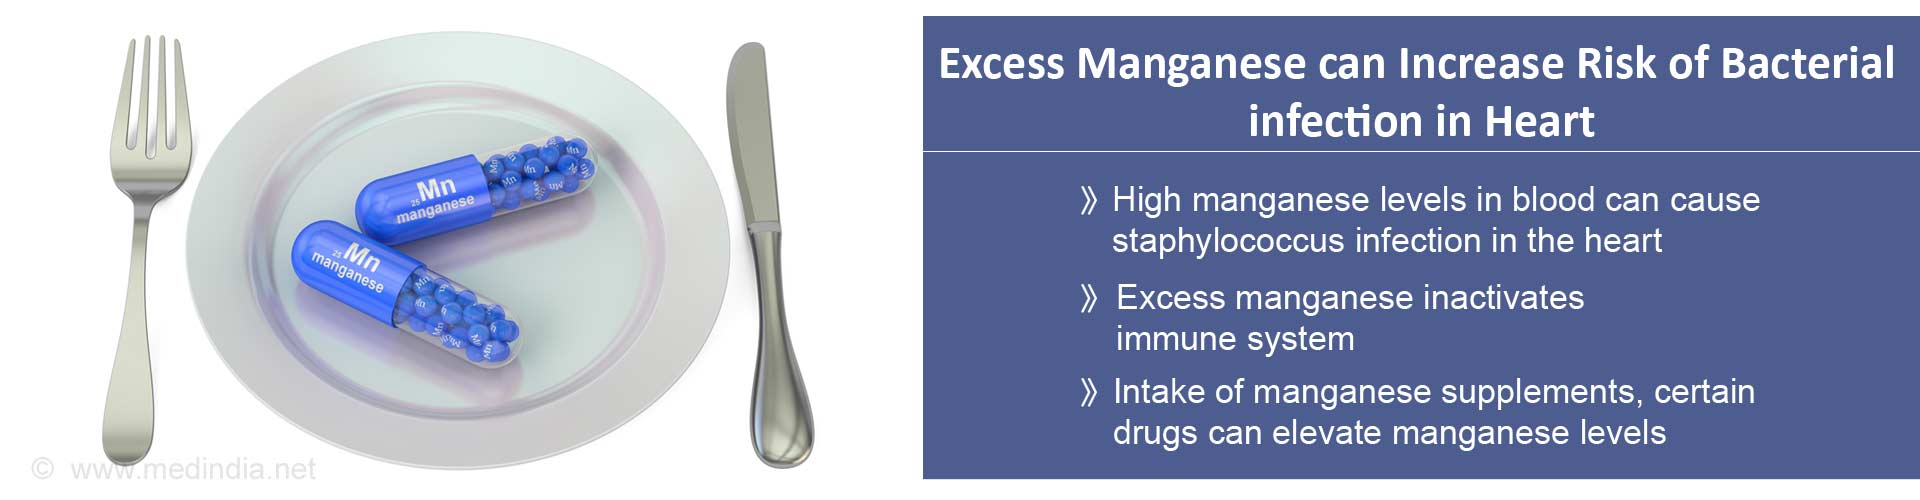 Excess Dietary Manganese Promotes Staph Heart Infection